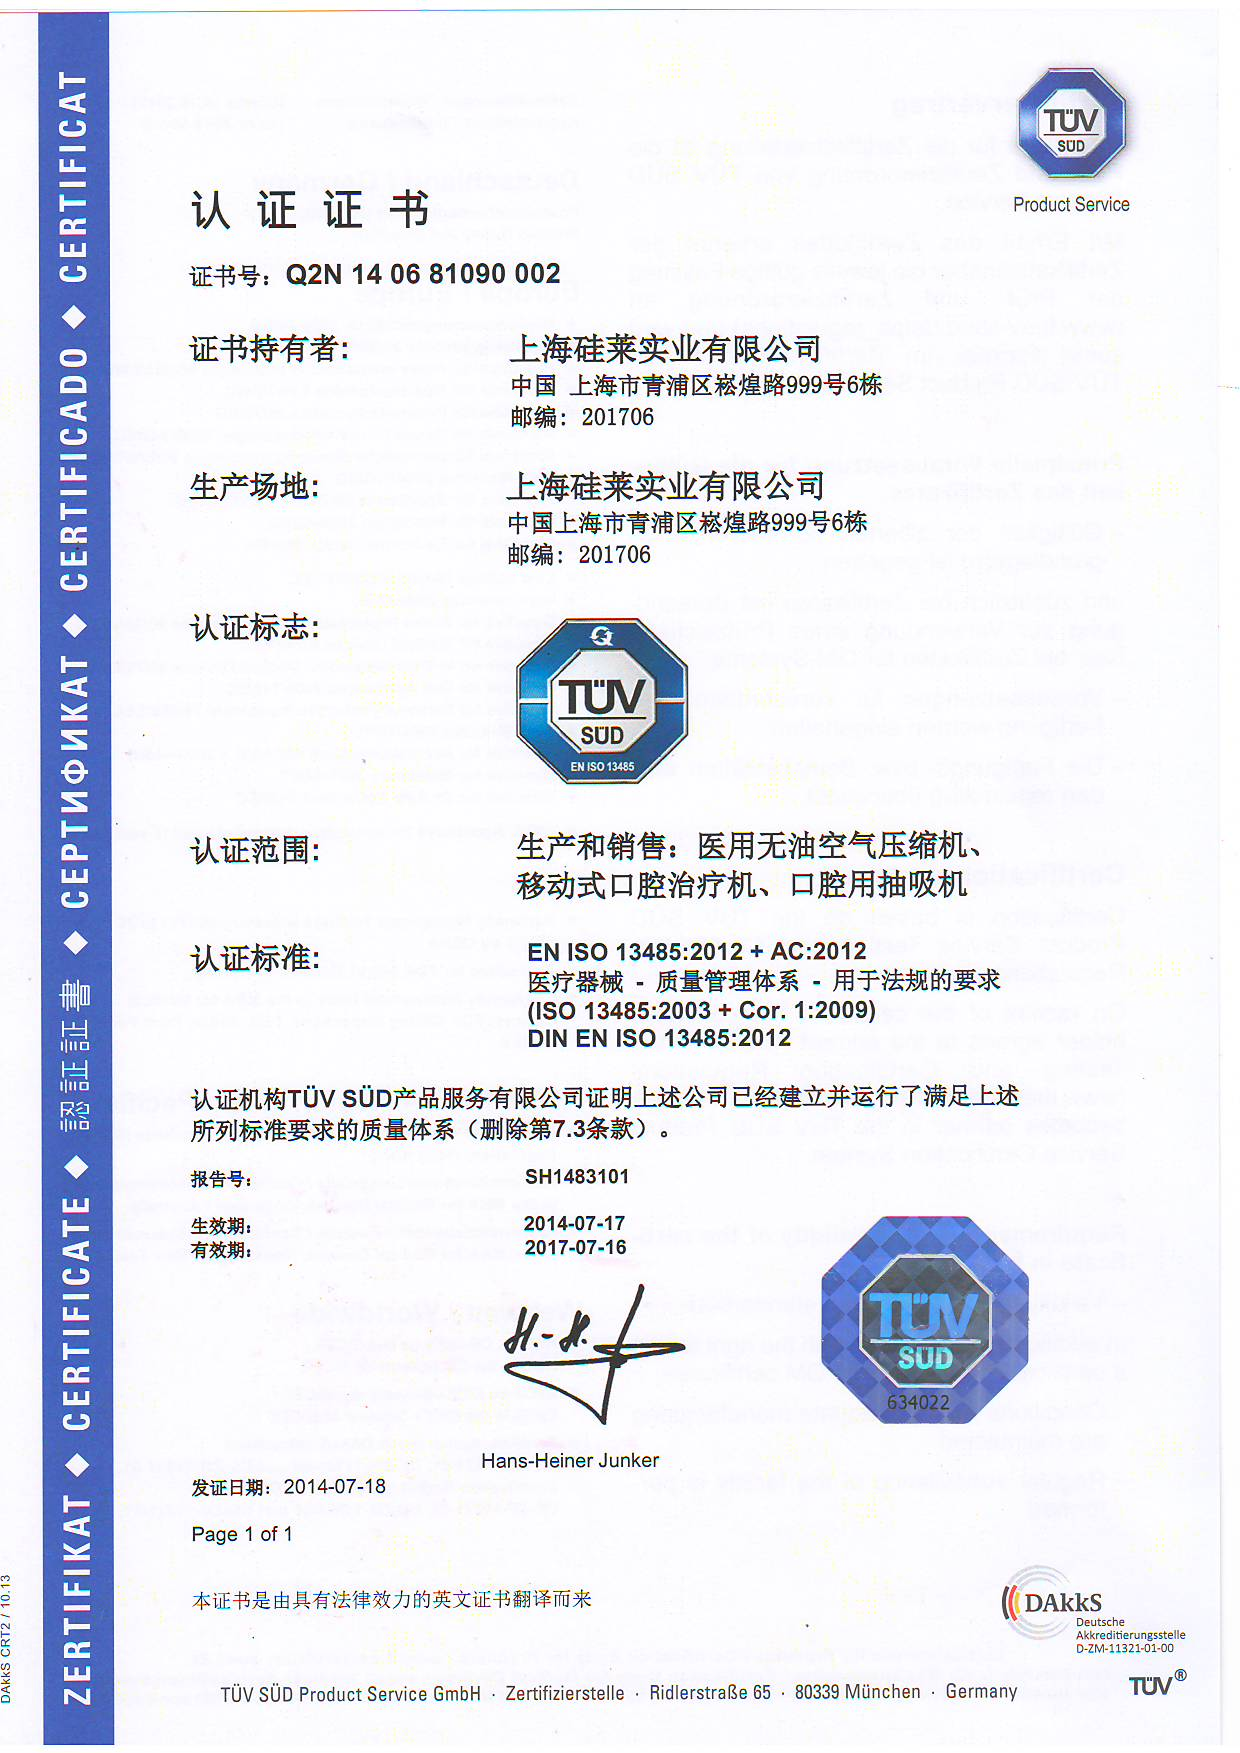 ISO License by TUV-Q2N 140681090002